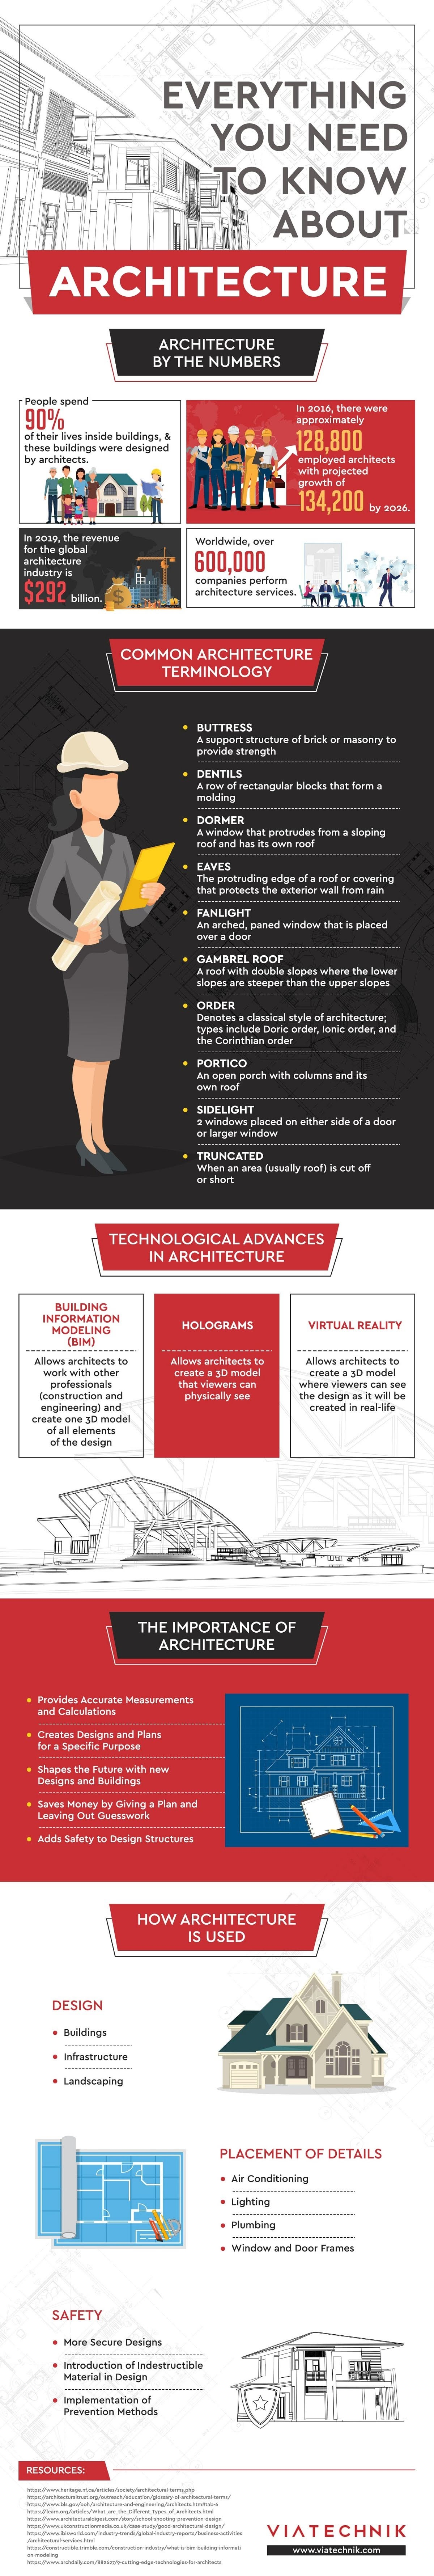 Everything You Need to Know About Architecture #infographic